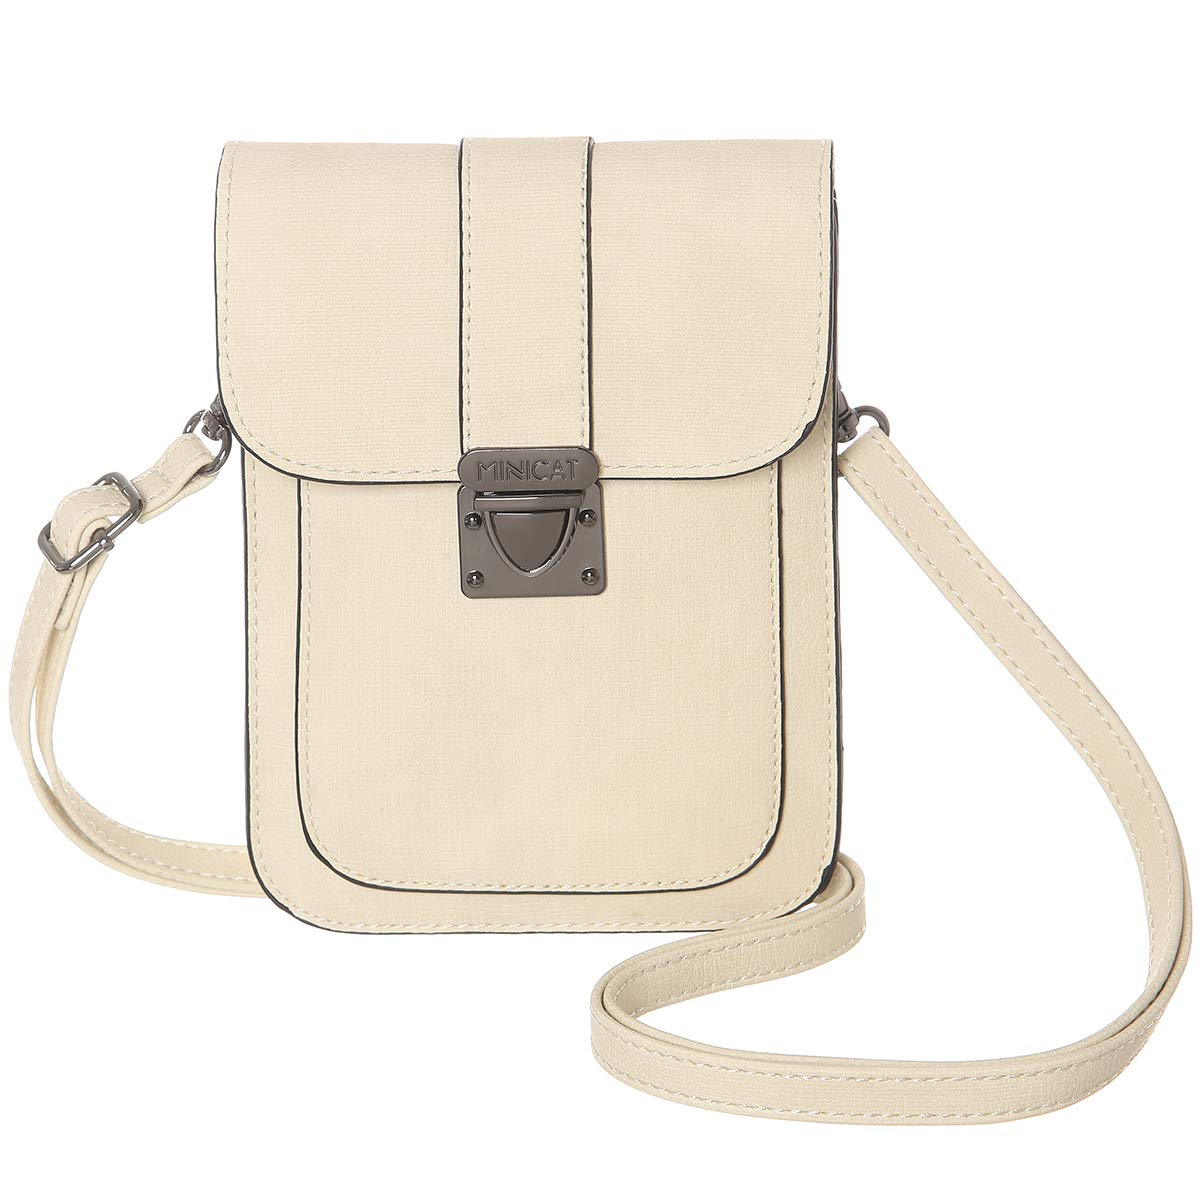 7640ae129 Amazon.com: MINICAT Women Simple Series Small Crossbody Bags Synthetic  Leather Cell Phone Purse Wallet(Beige): Shoes